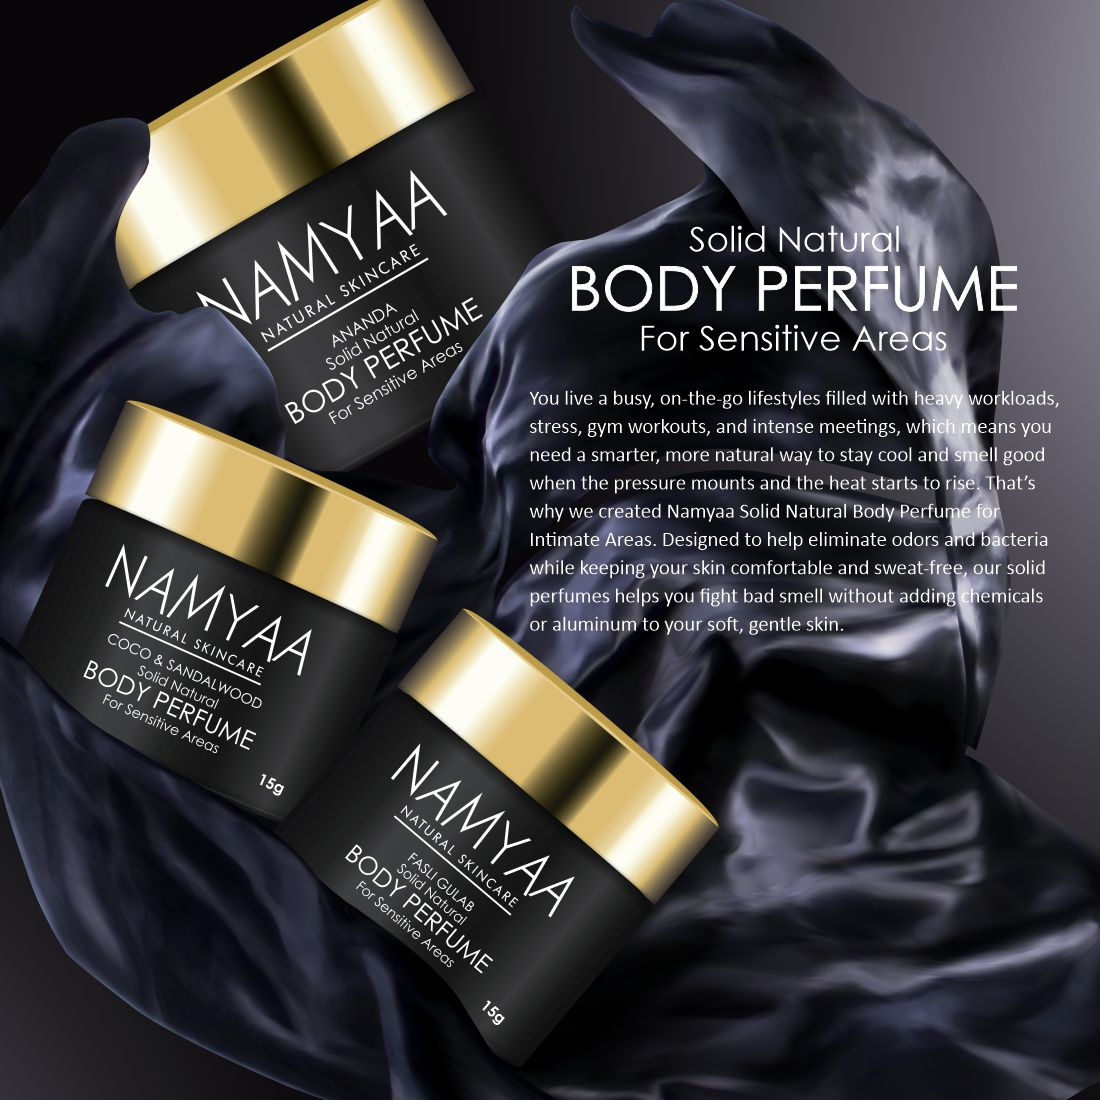 Body Perfume for Sensitive Areas